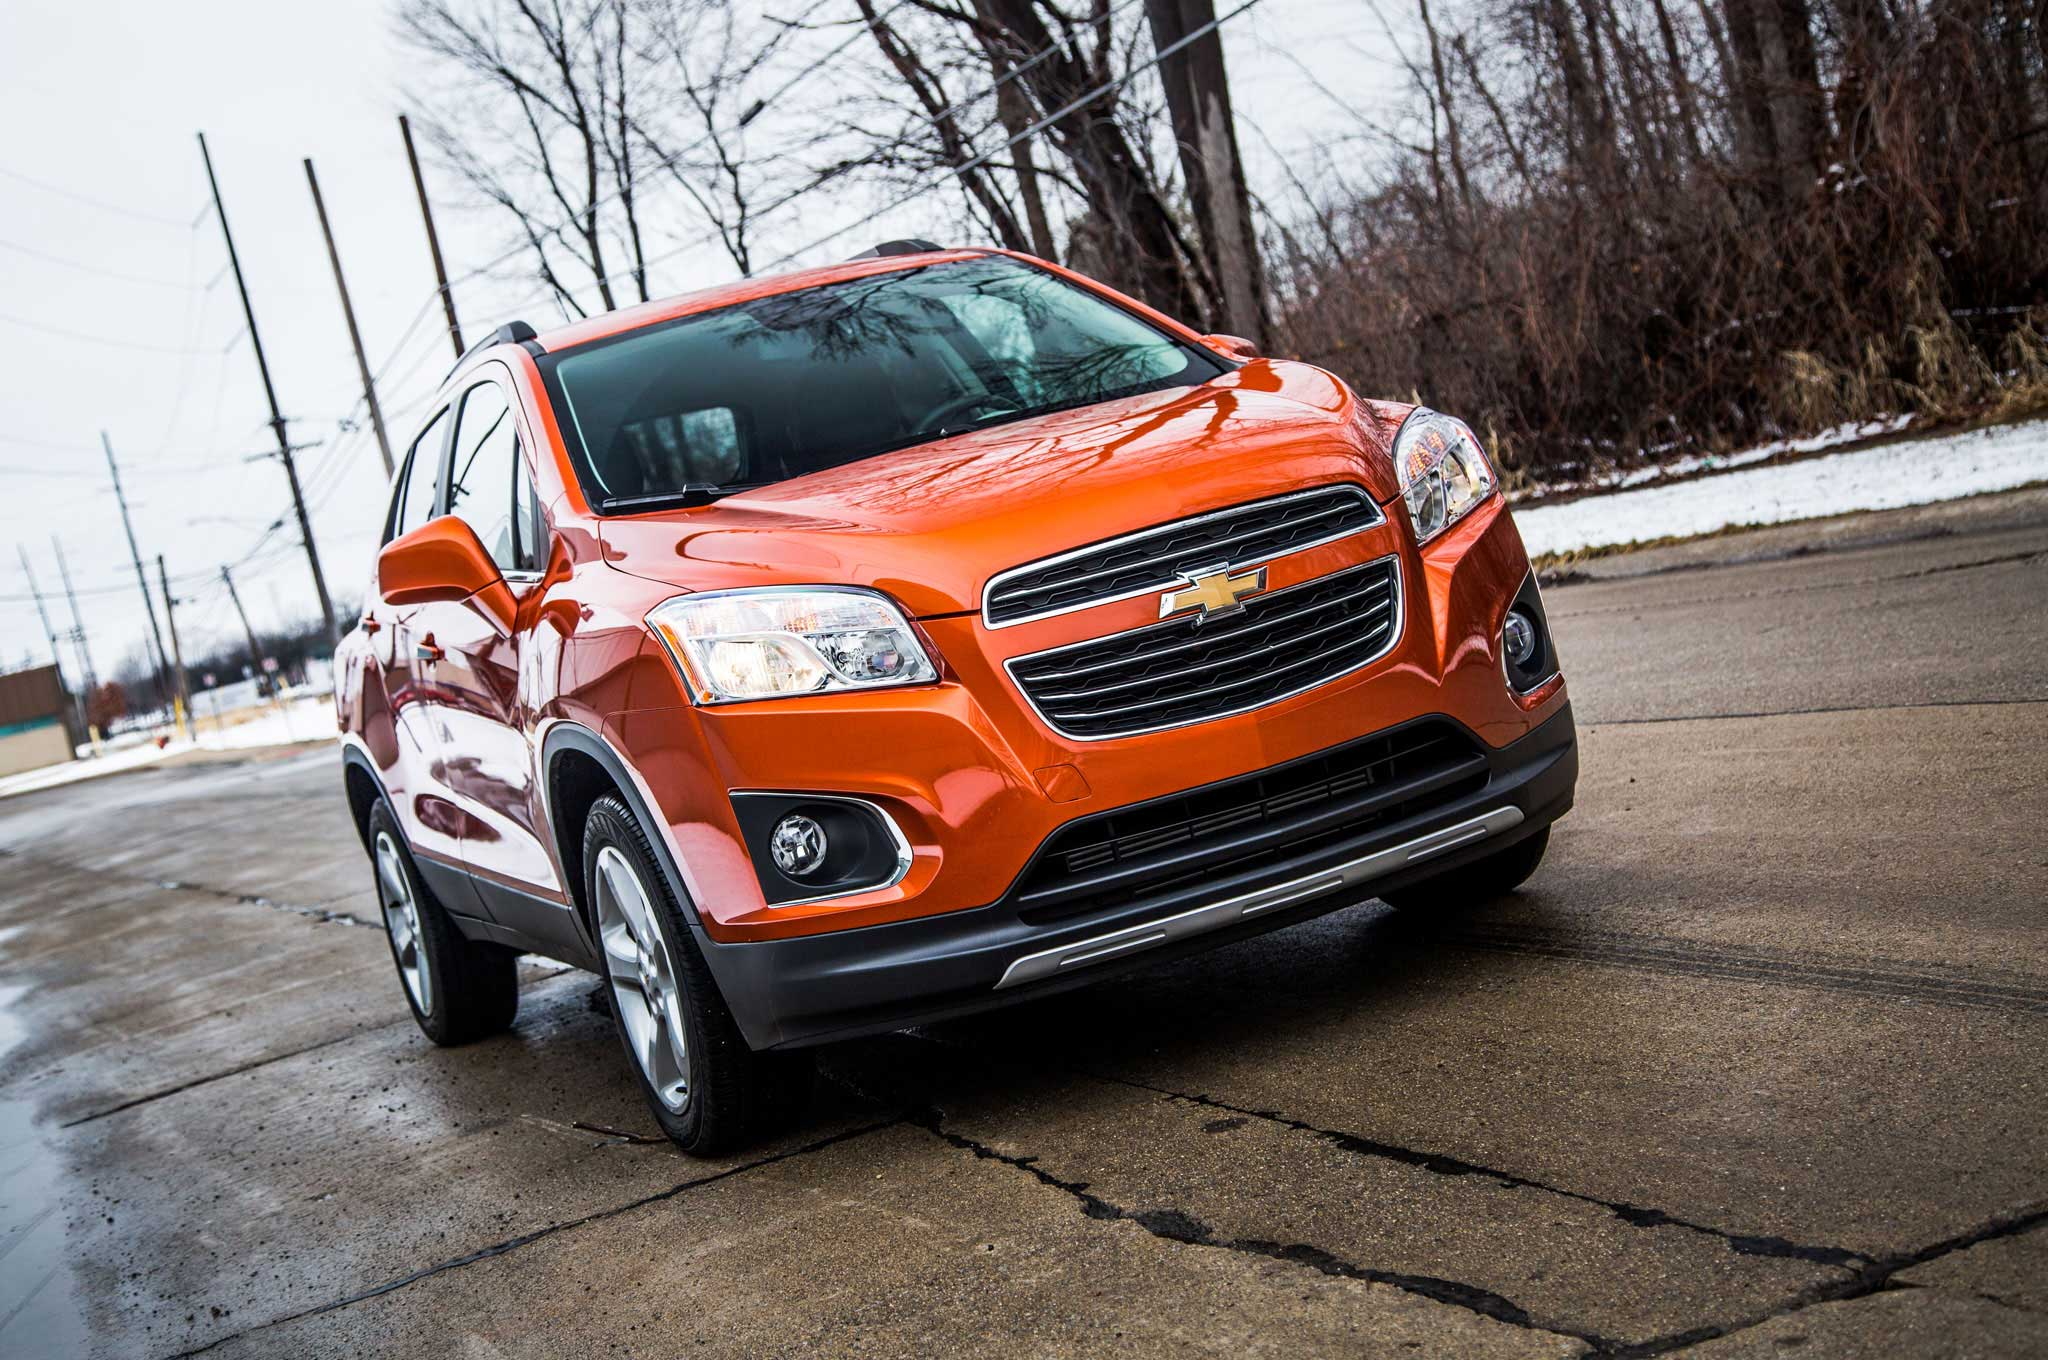 spring new chevrolet all cold watch minneapolis trax st willmar cloud mn ls the review